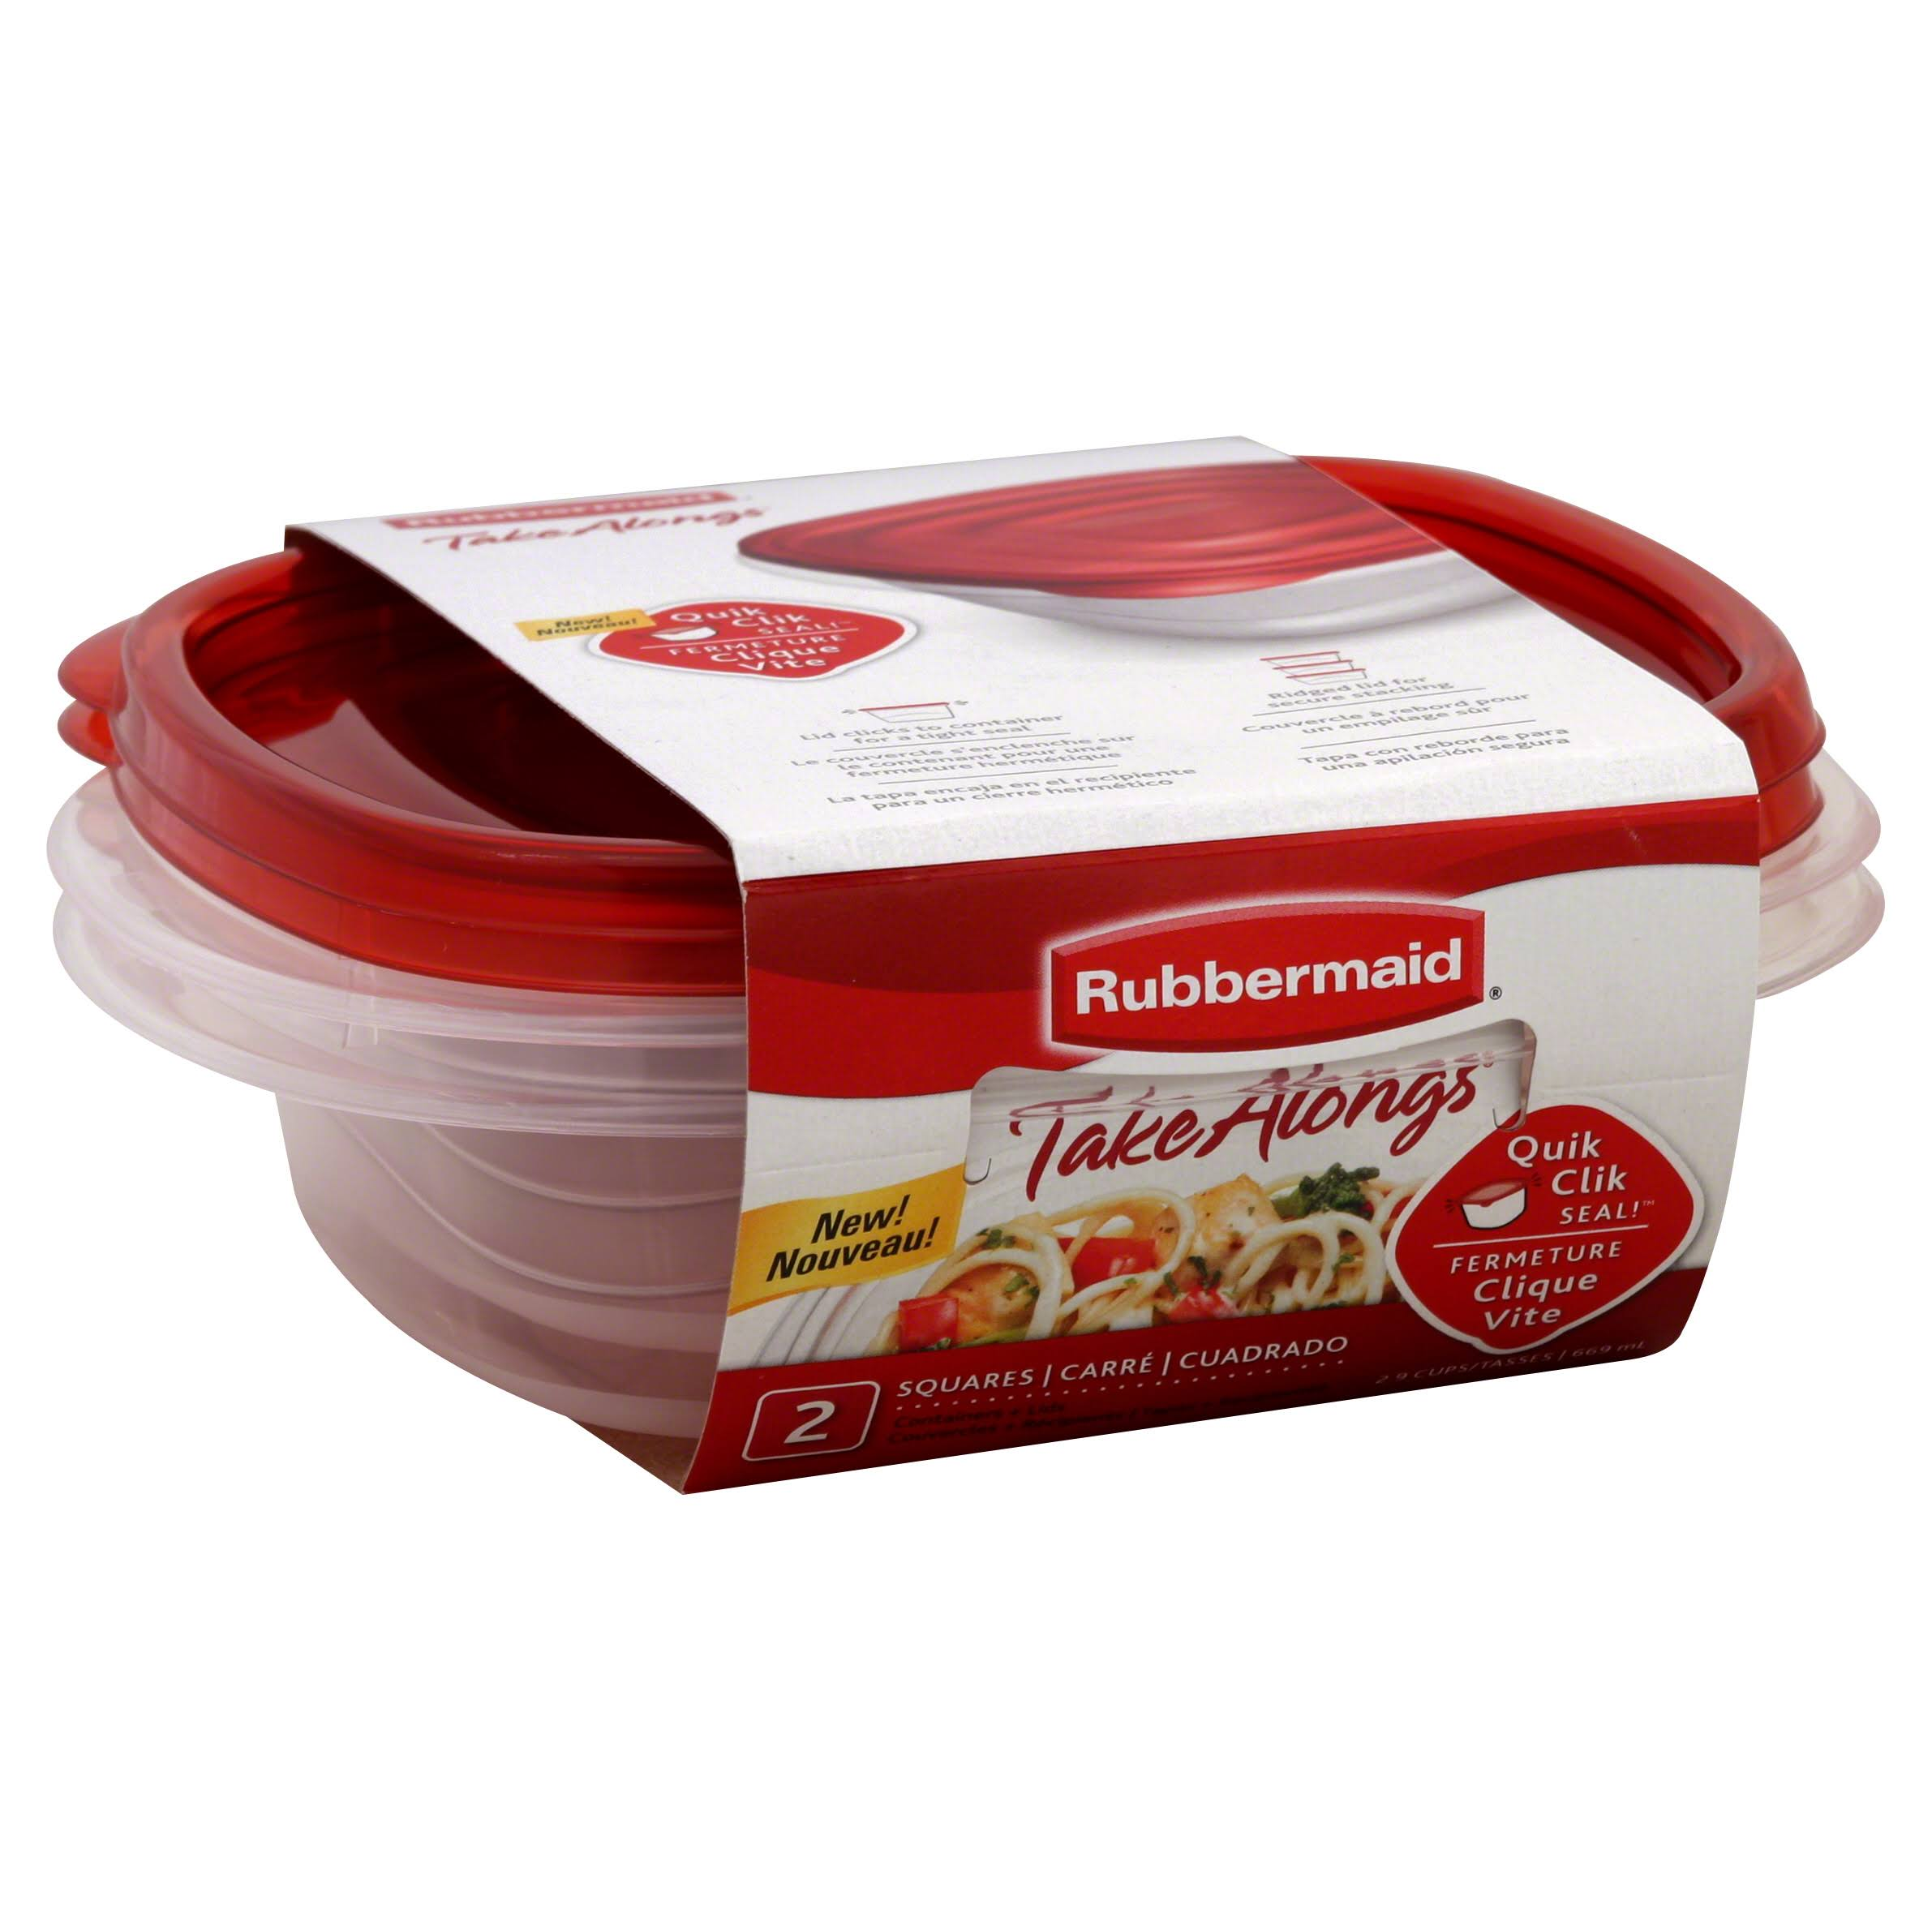 Rubbermaid Takeaongs Food Storage Container